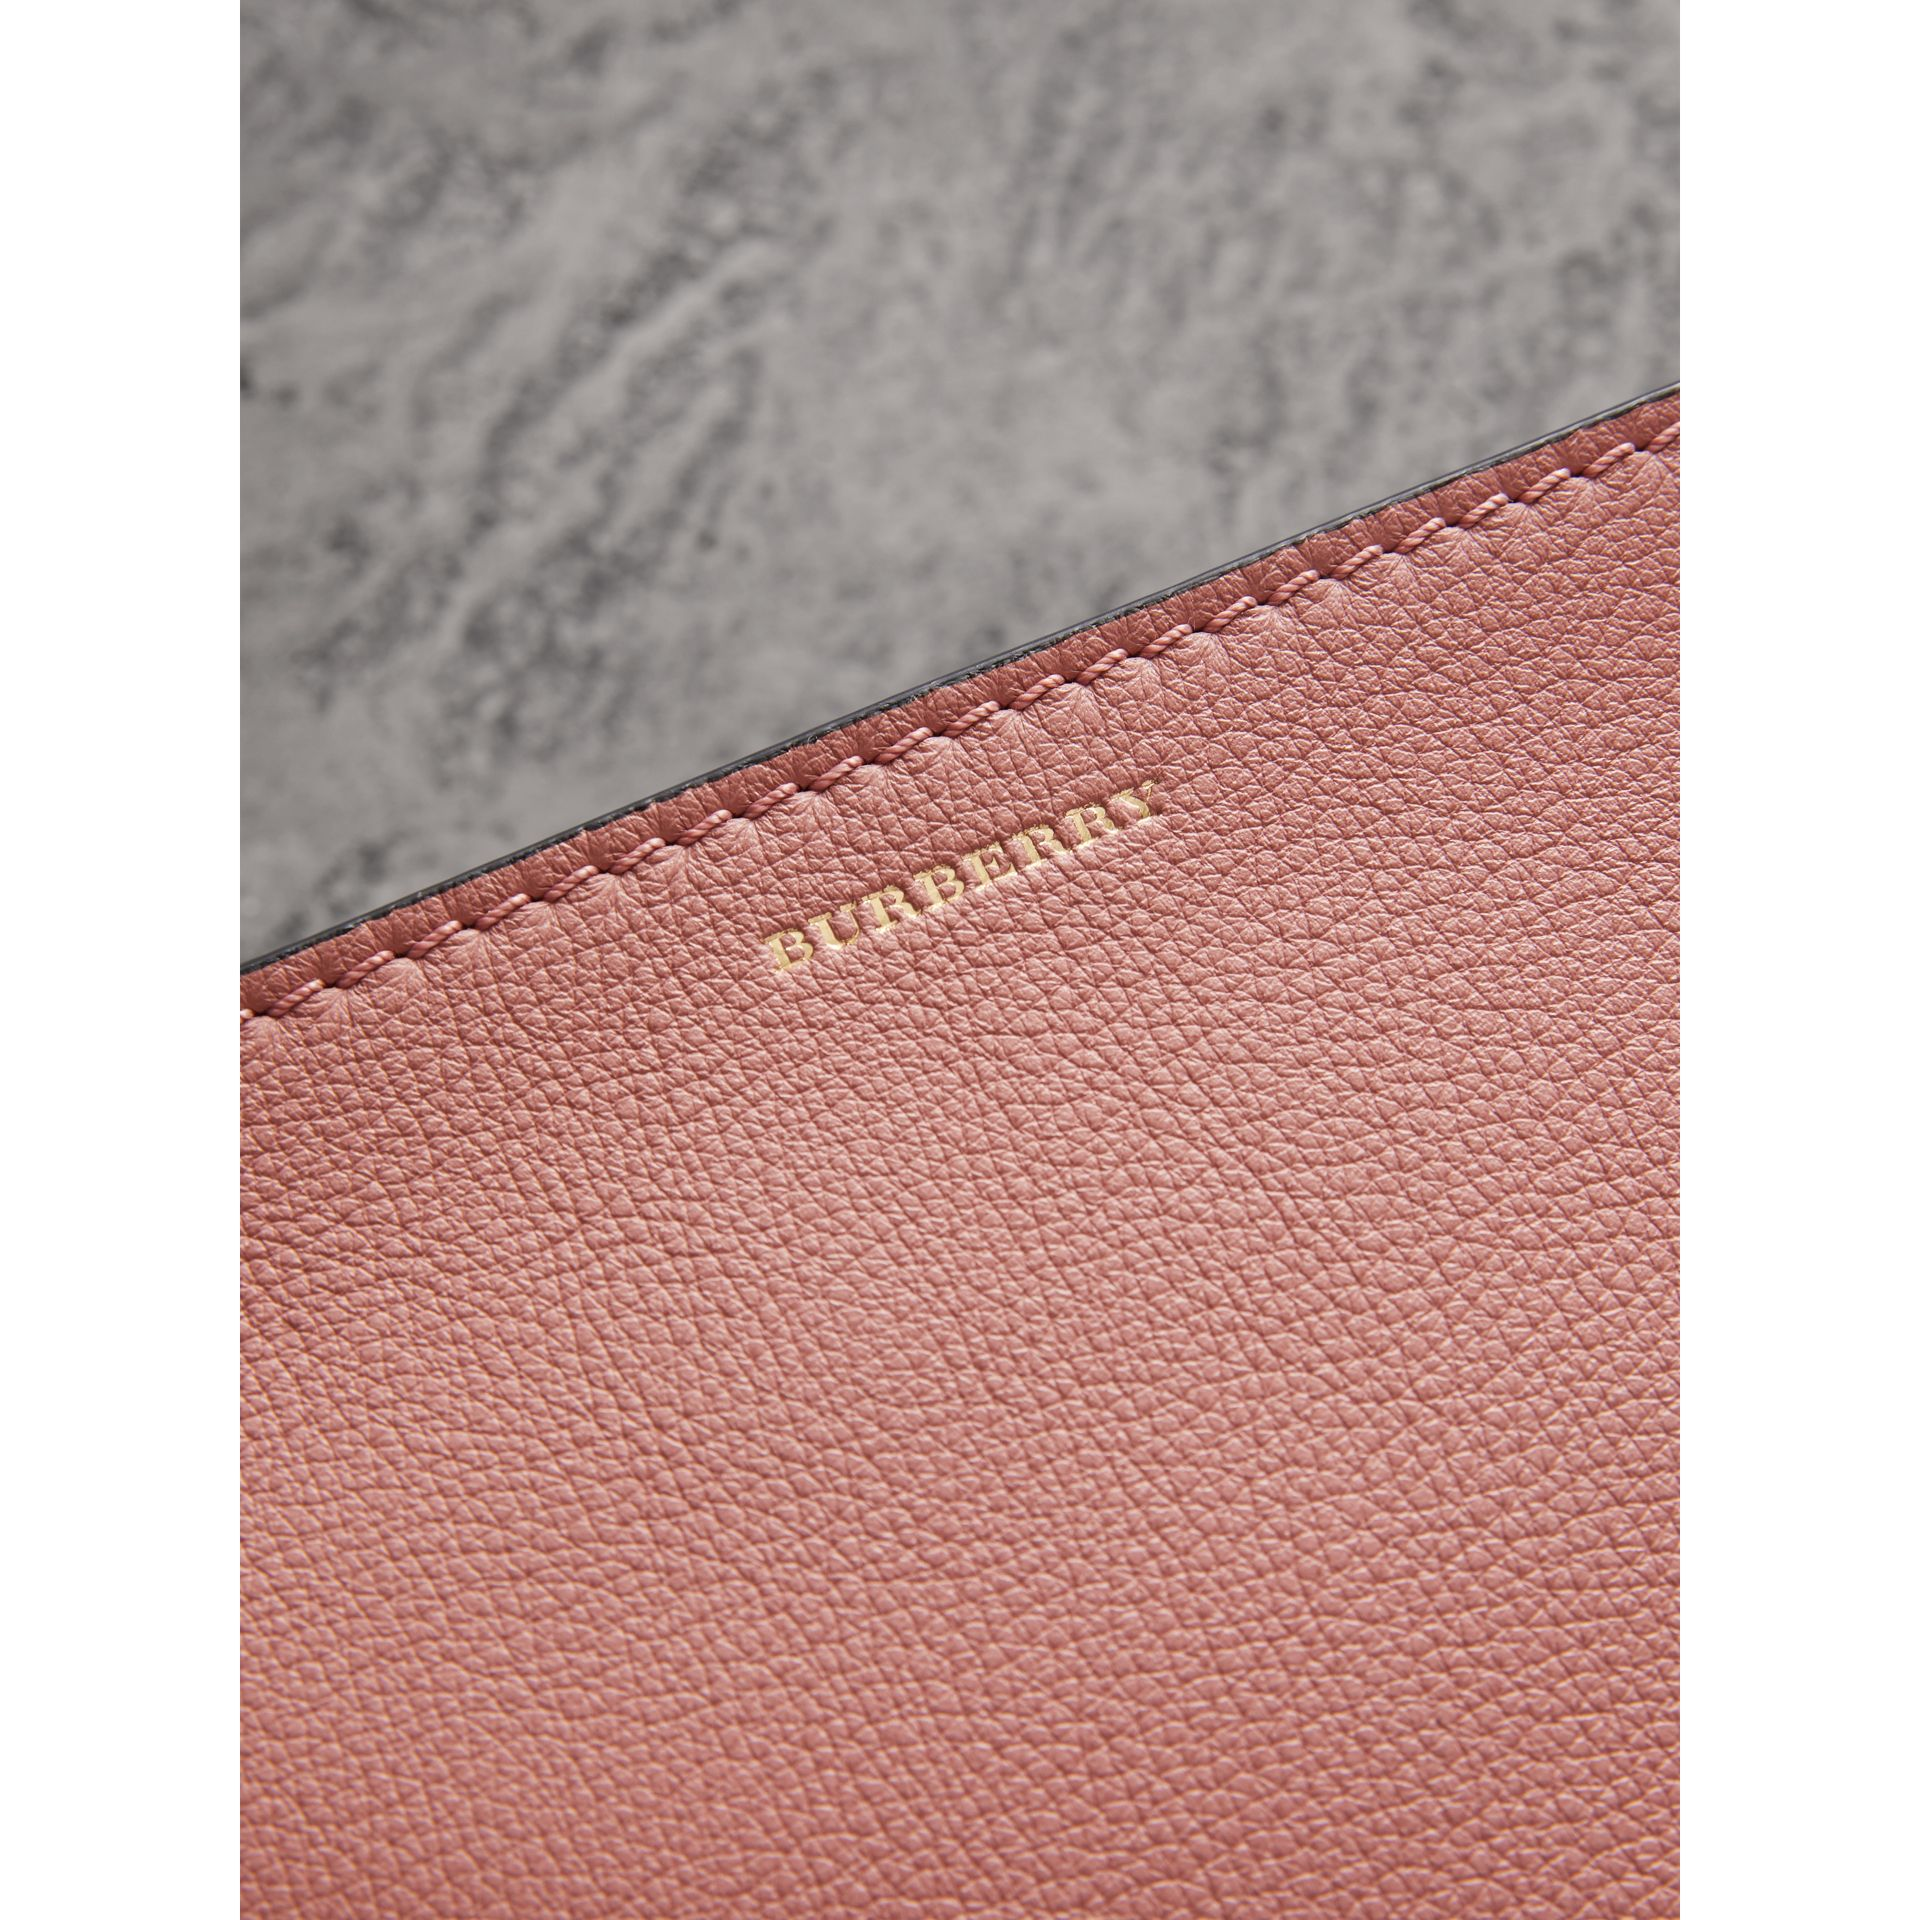 Medium Tri-tone Leather Clutch in Dusty Rose/limestone | Burberry Australia - gallery image 1